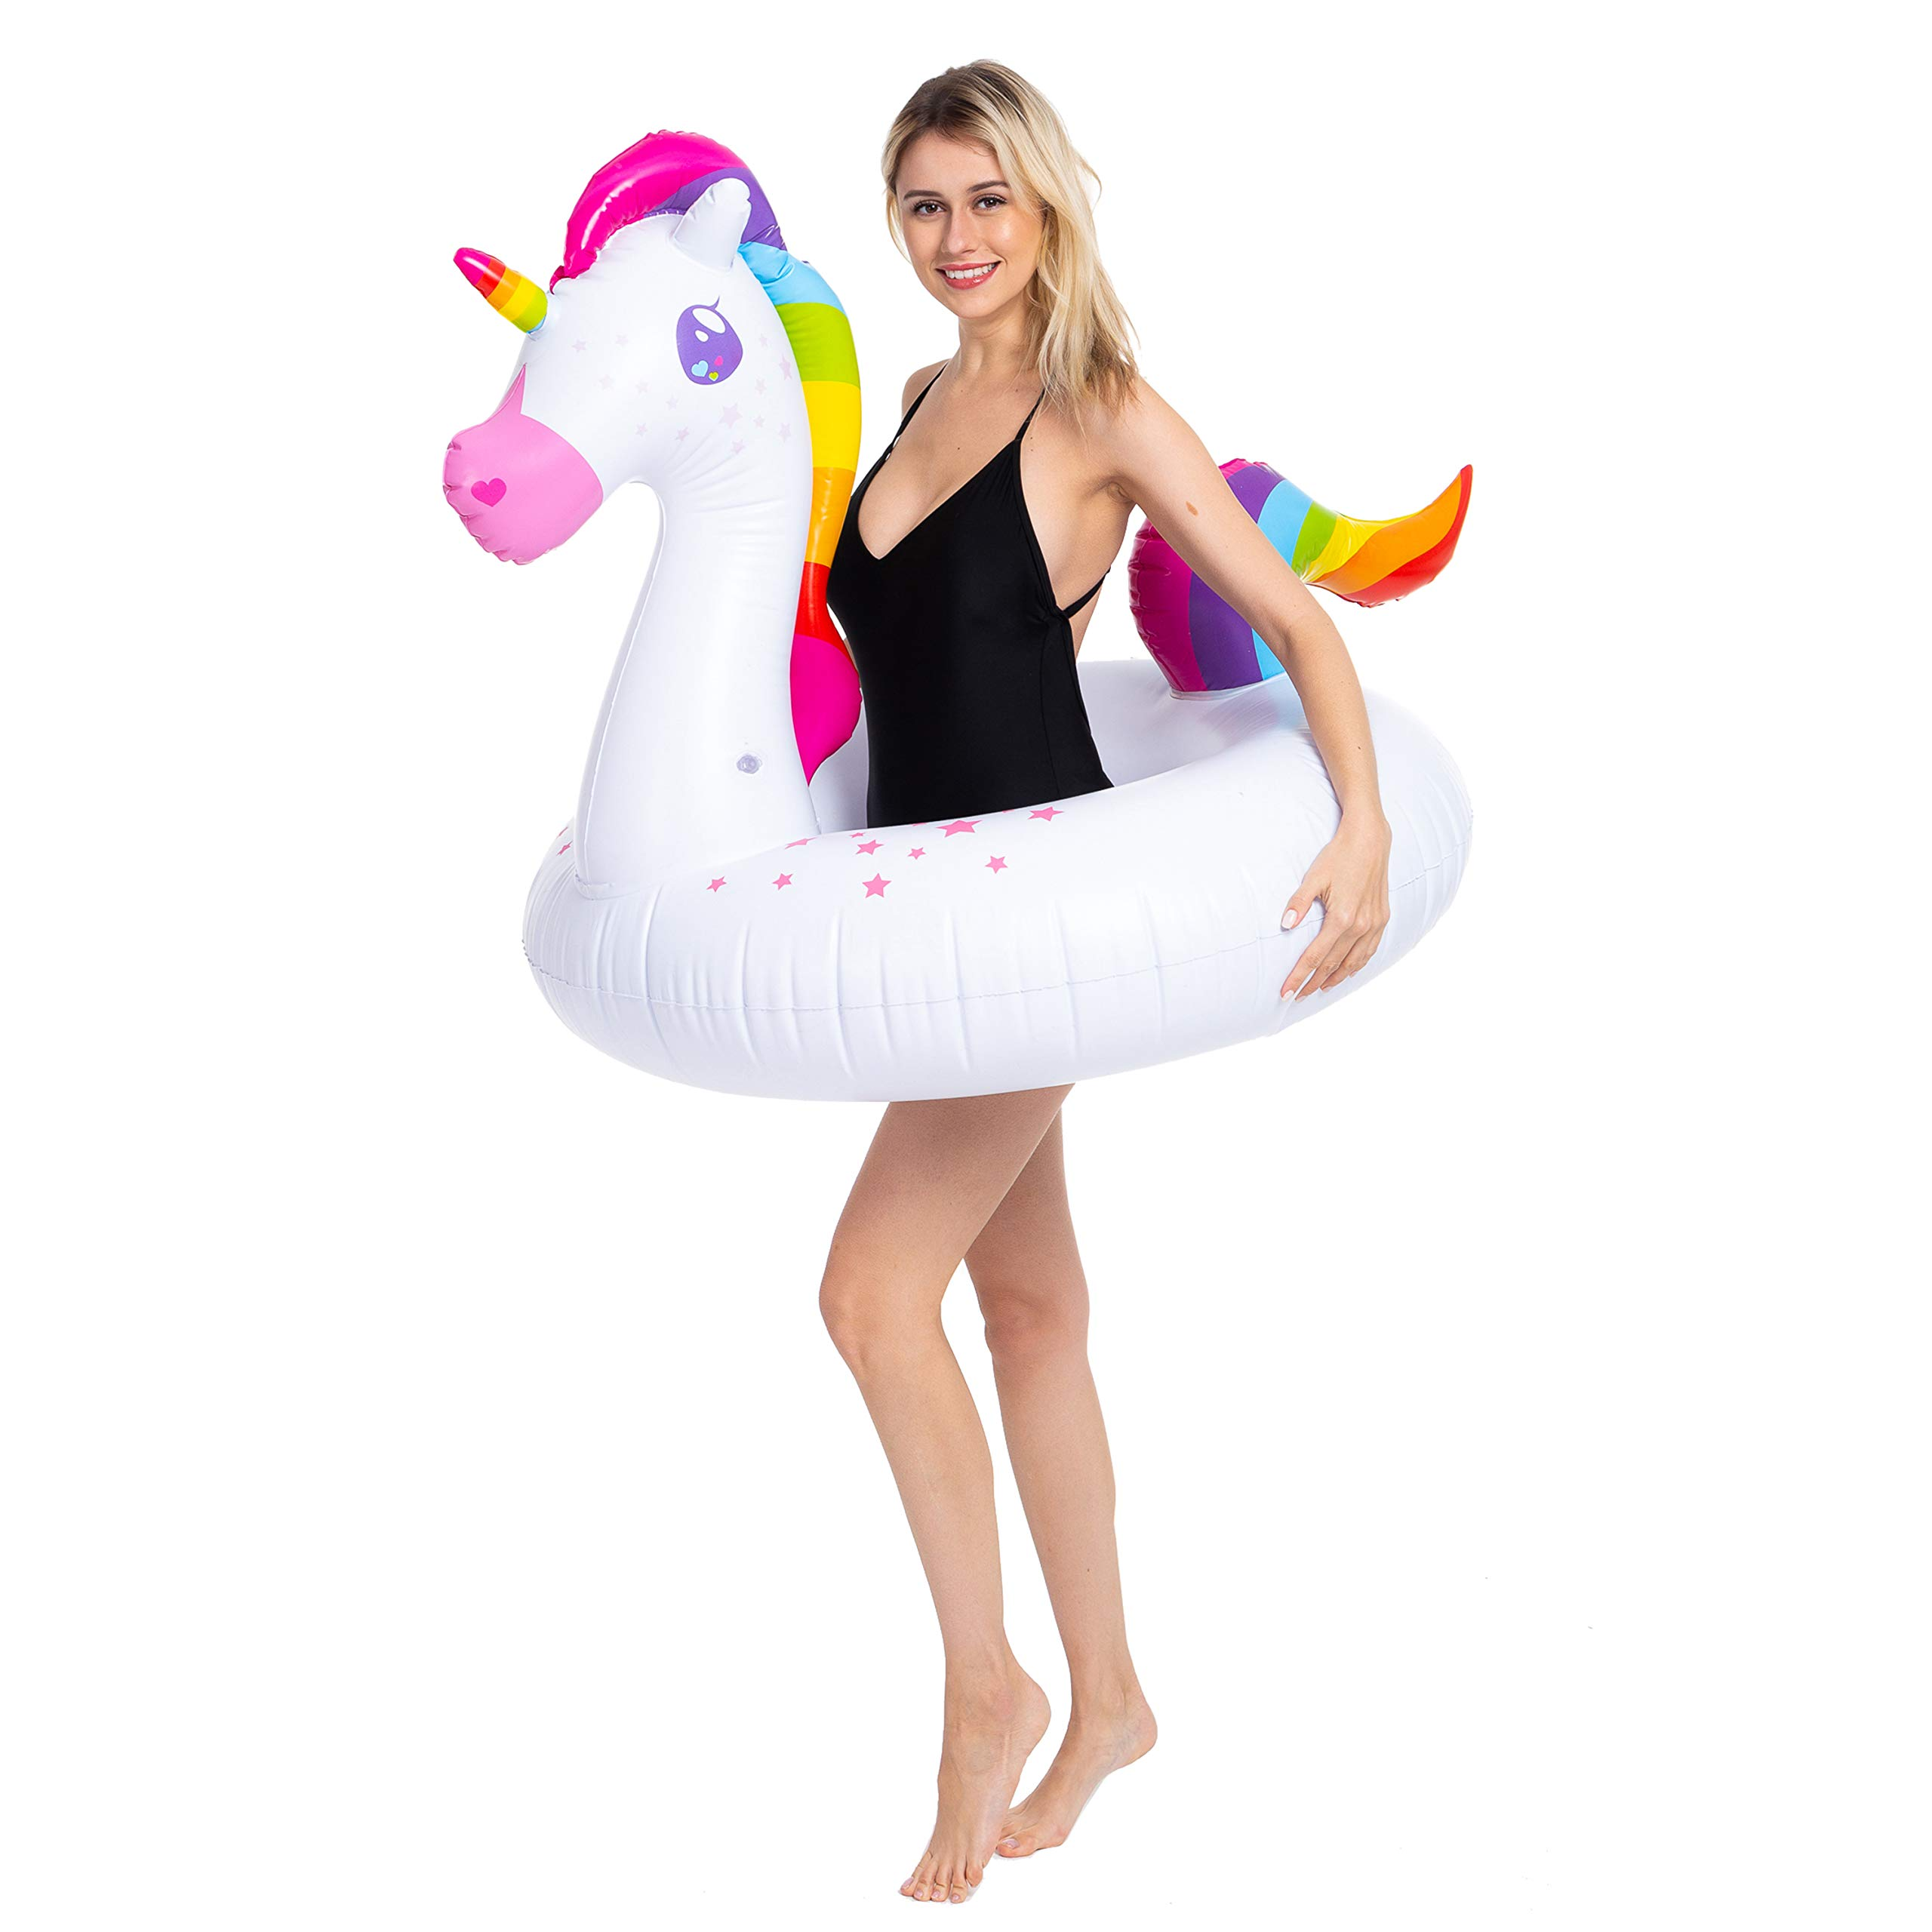 JOYIN Inflatable Flamingo and Unicorn Pool Float 2 Pack, Fun Beach Floaties, Swim Party Toys, Summer Pool Raft Lounger for Adults & Kids (Inflates to Over 4ft. Wide) by JOYIN (Image #2)